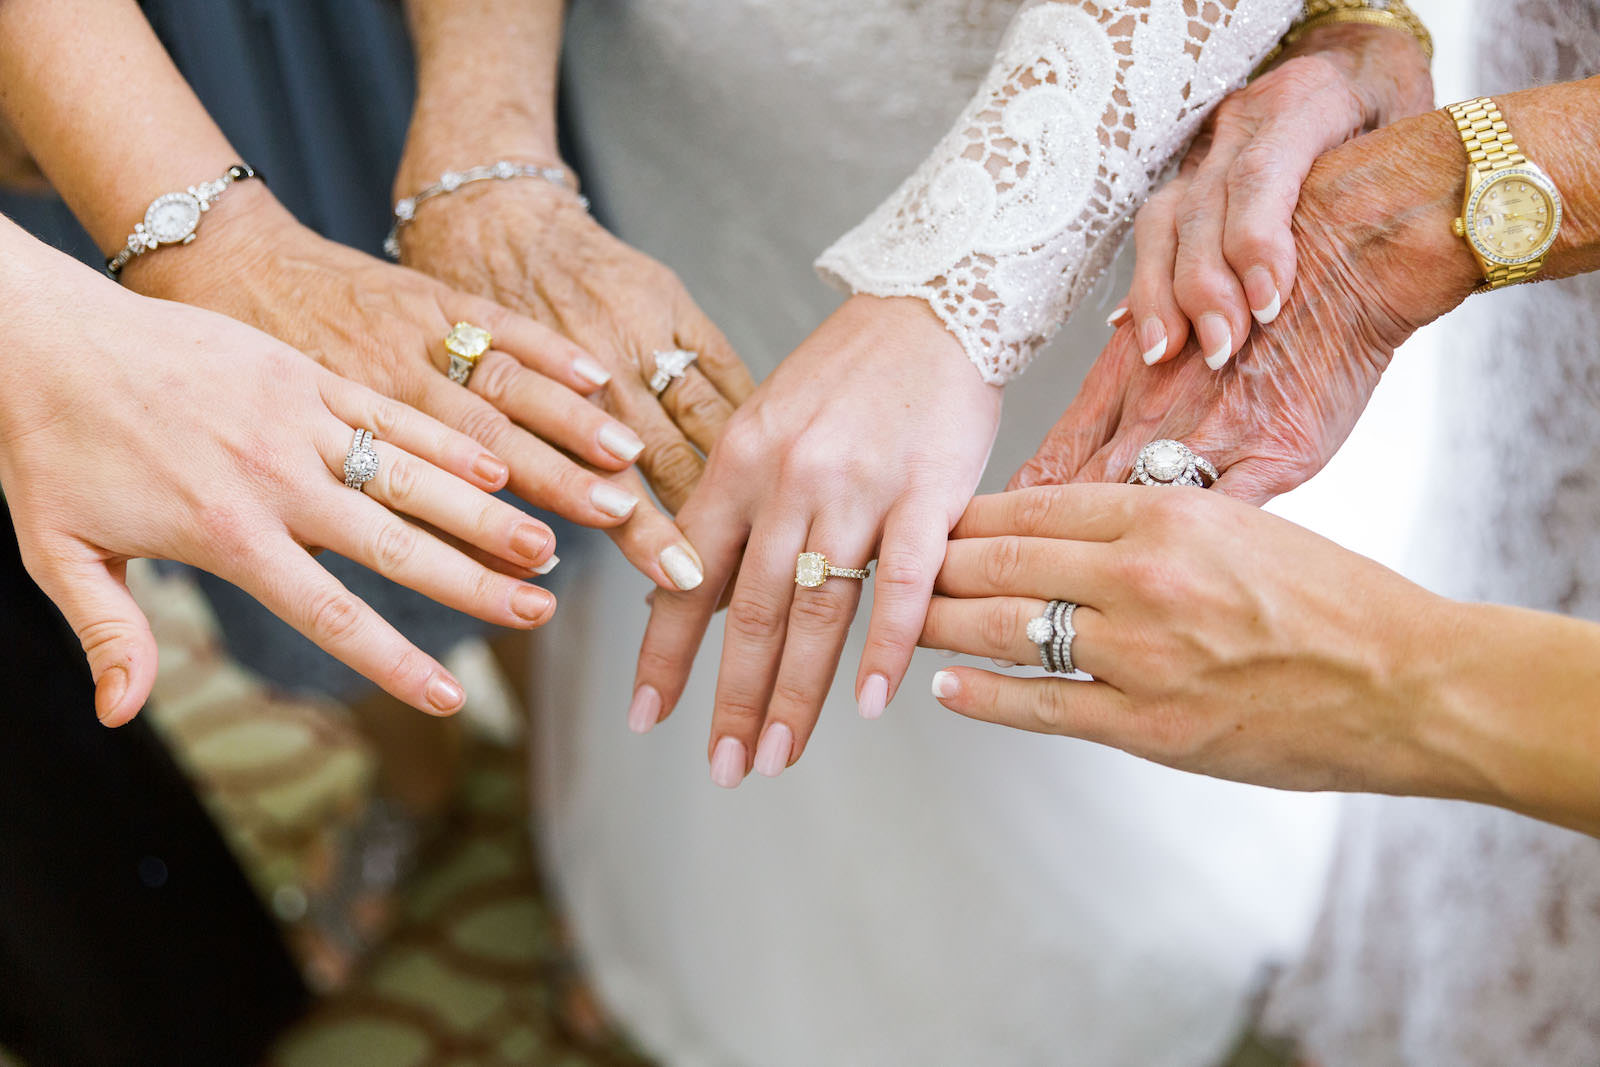 Bride Generation Photo Showing Hands with Rings